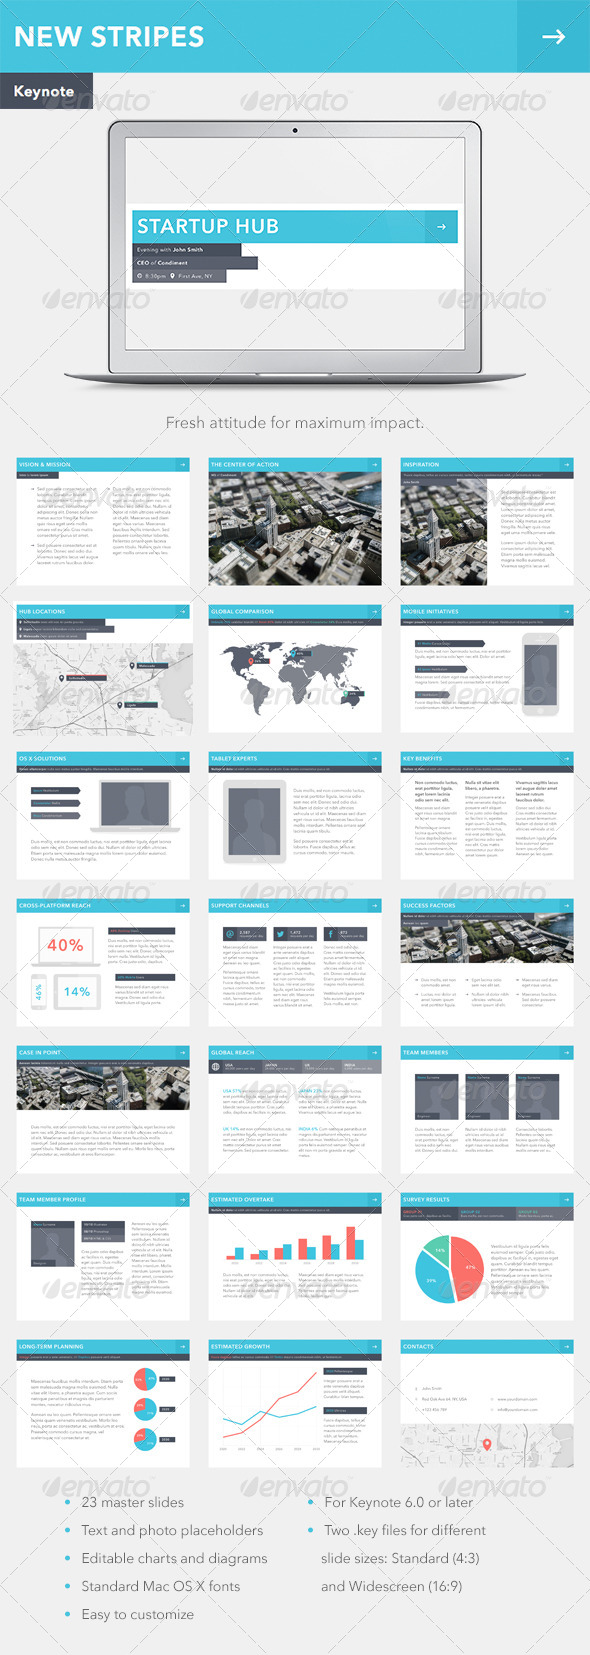 GraphicRiver New Stripes Keynote Template 6856462